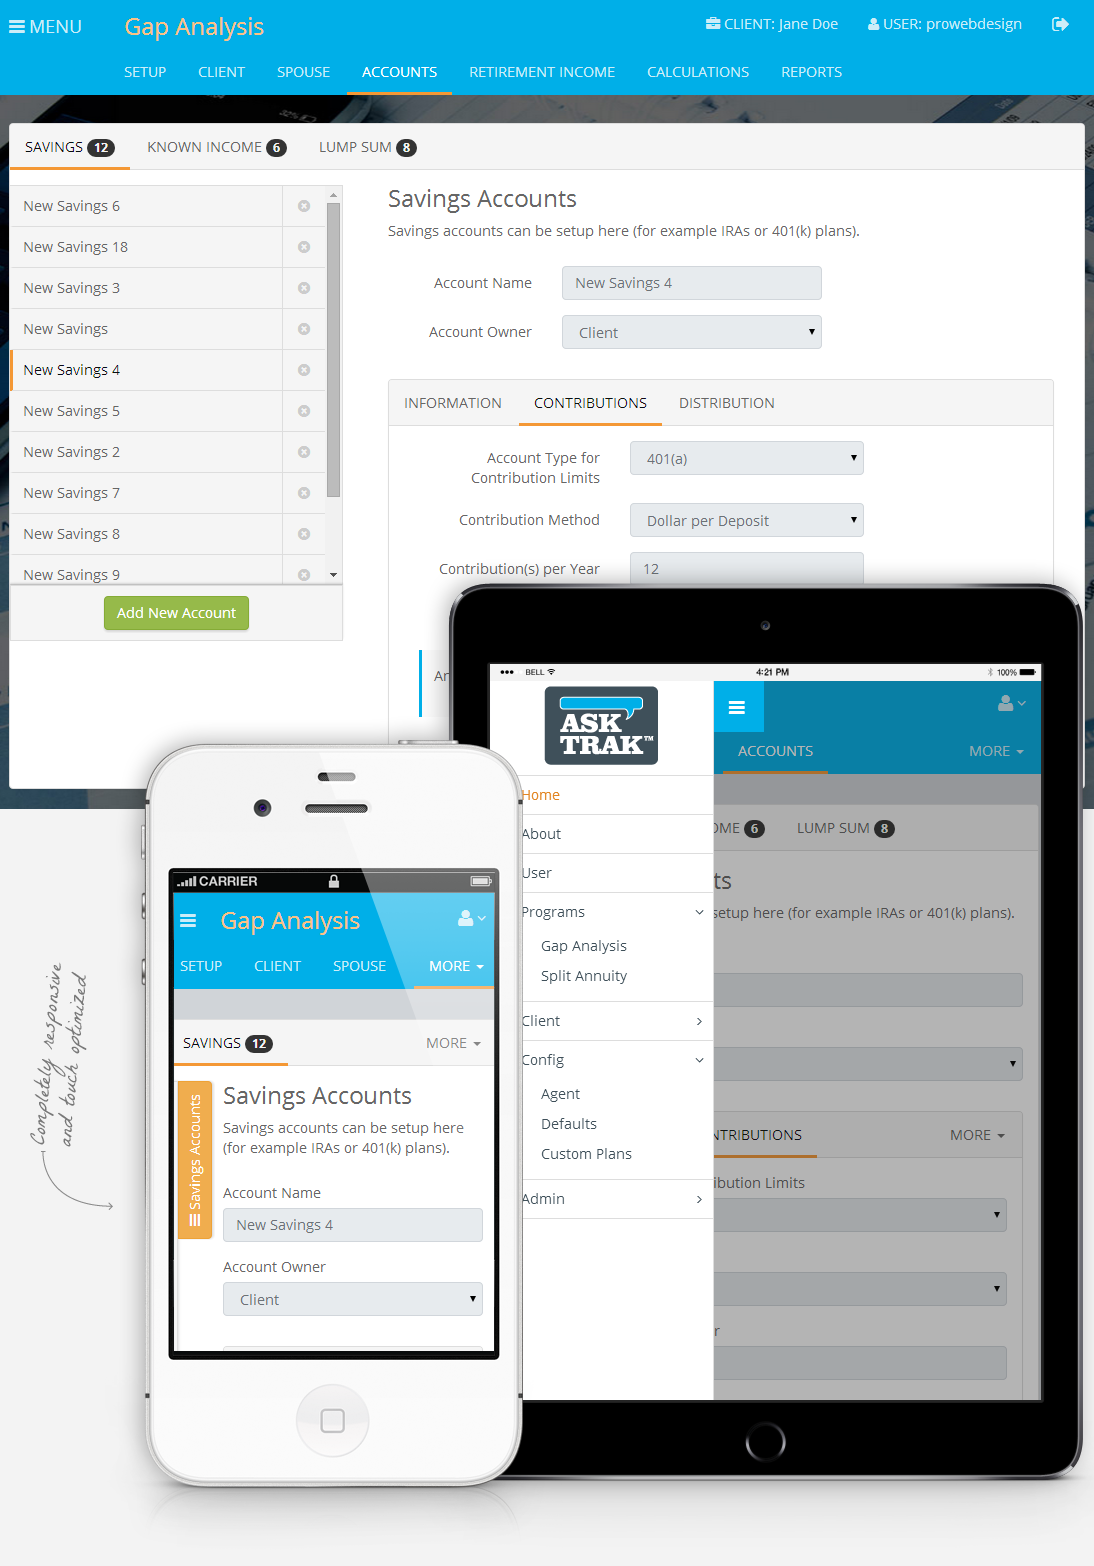 AskTRAK screenshot. Responsive layout